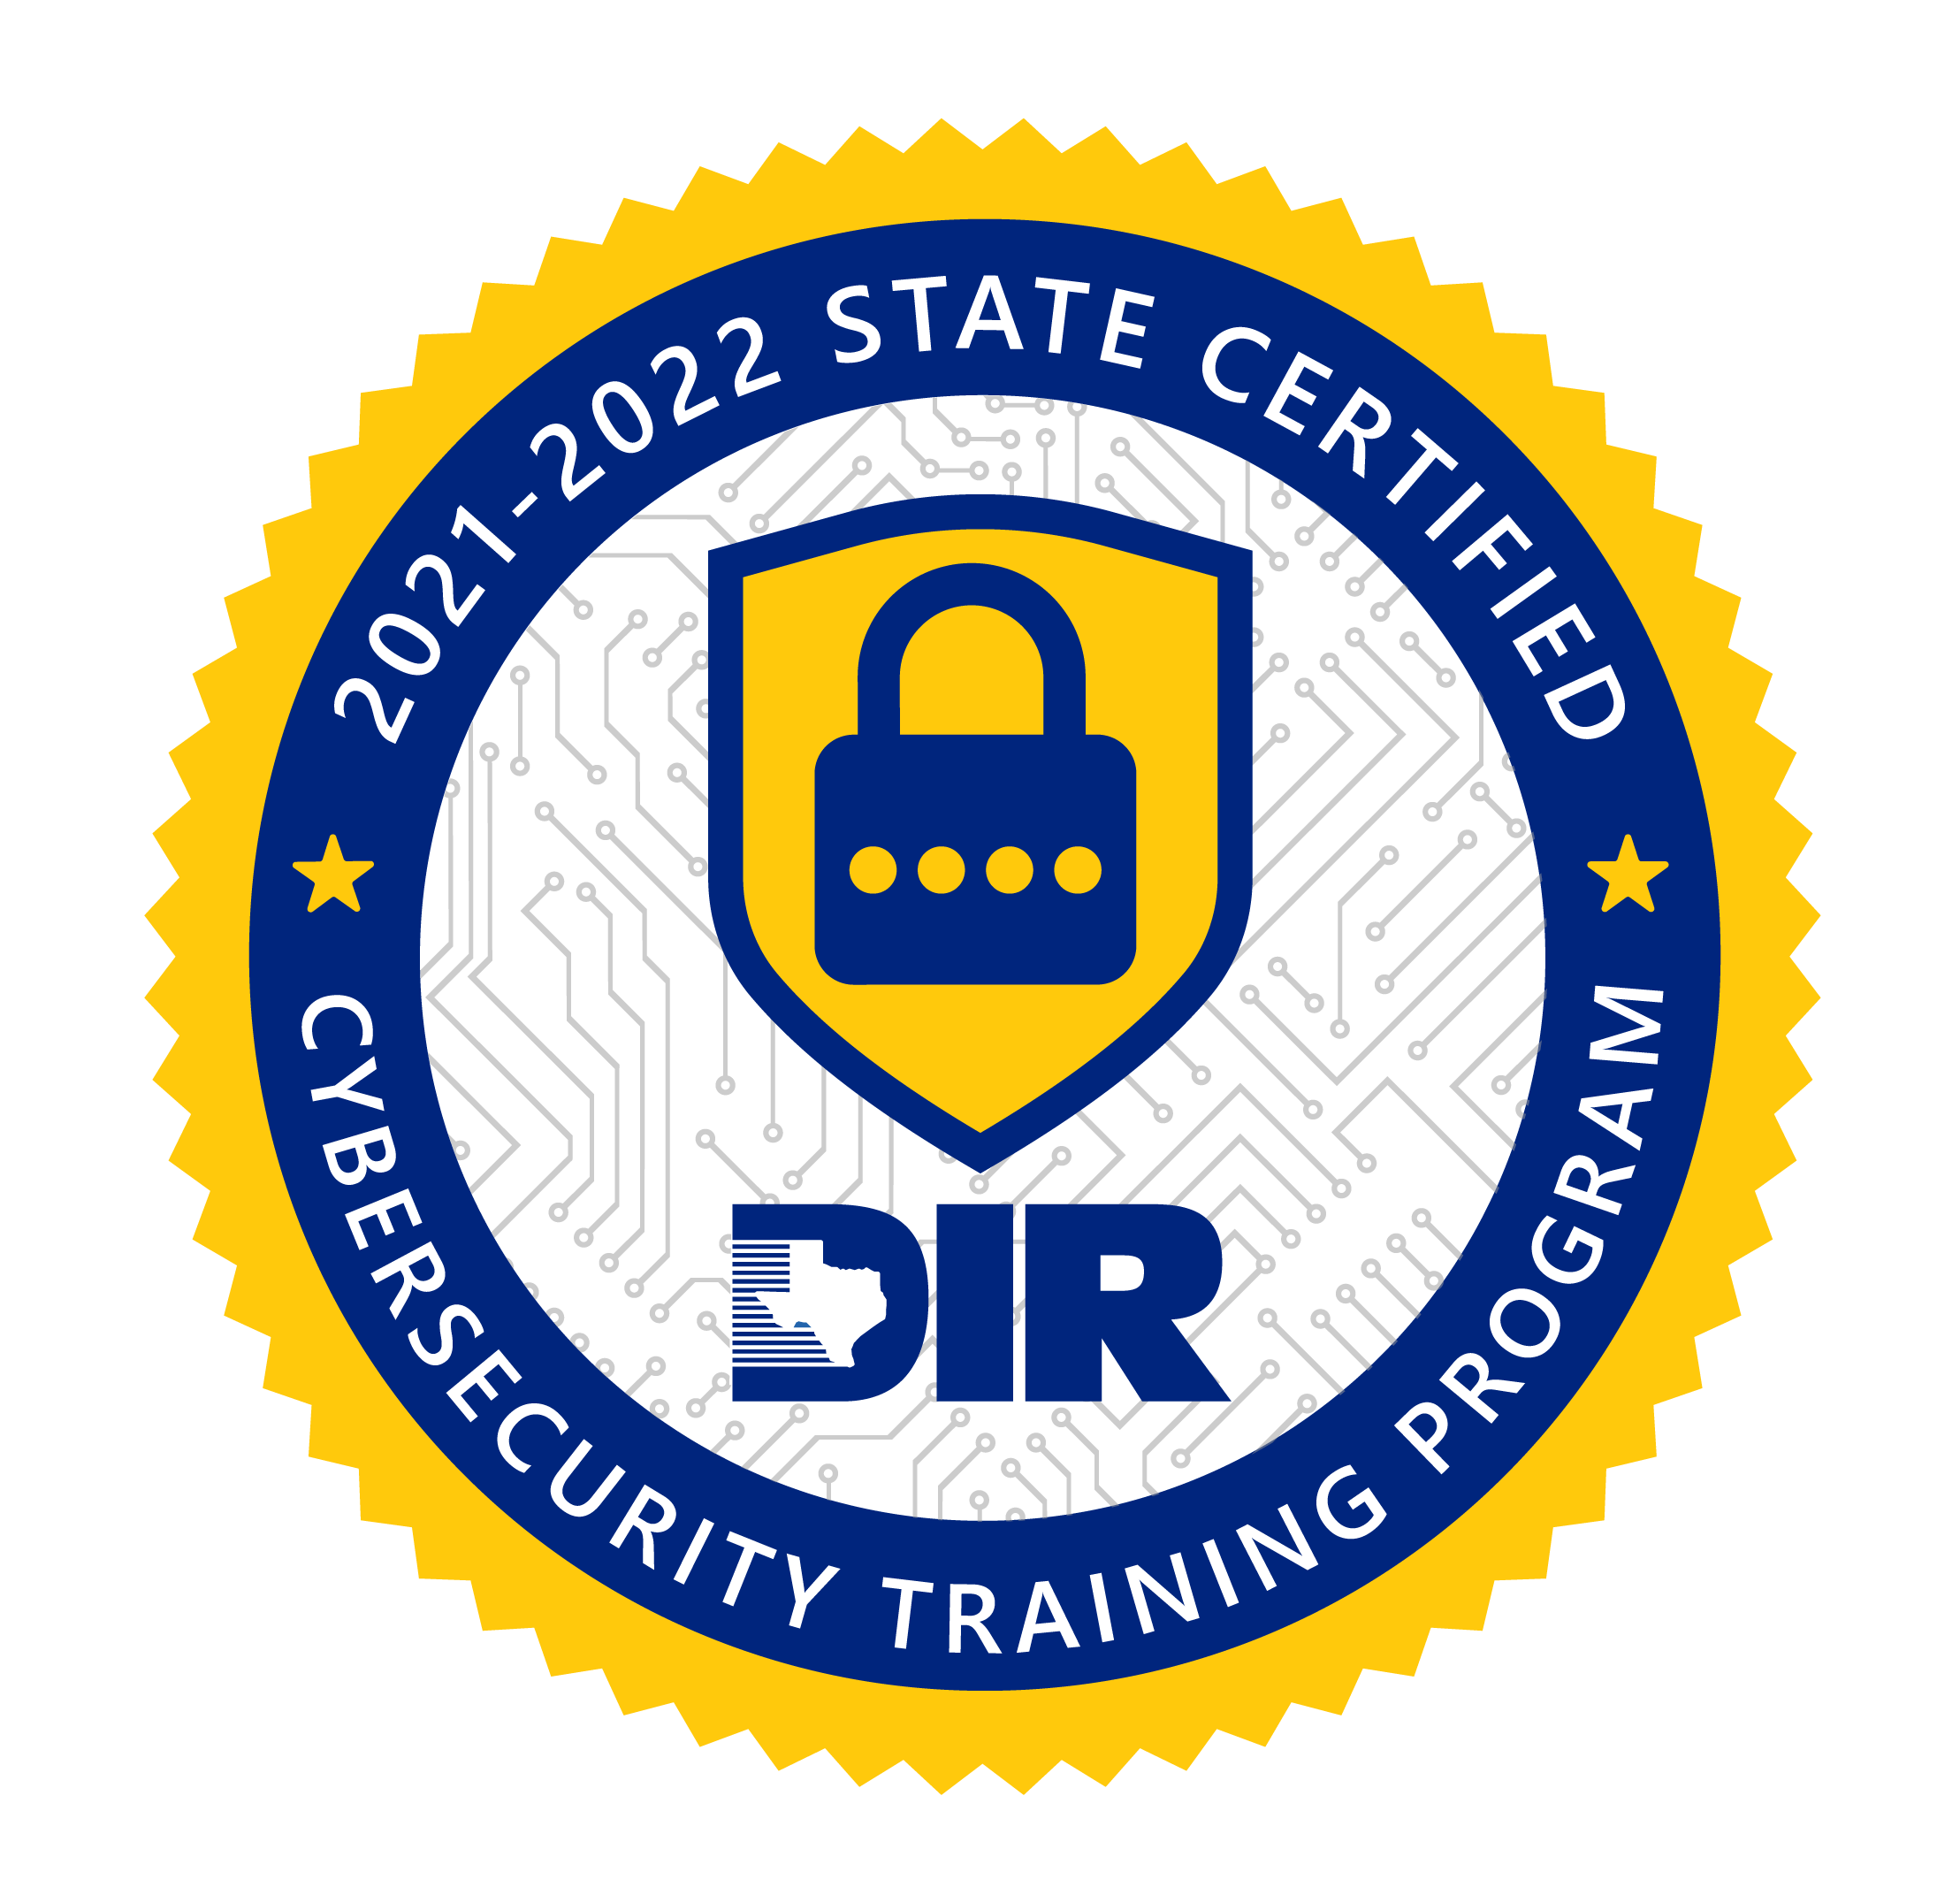 Educating the Workforce with Cybersecurity Training